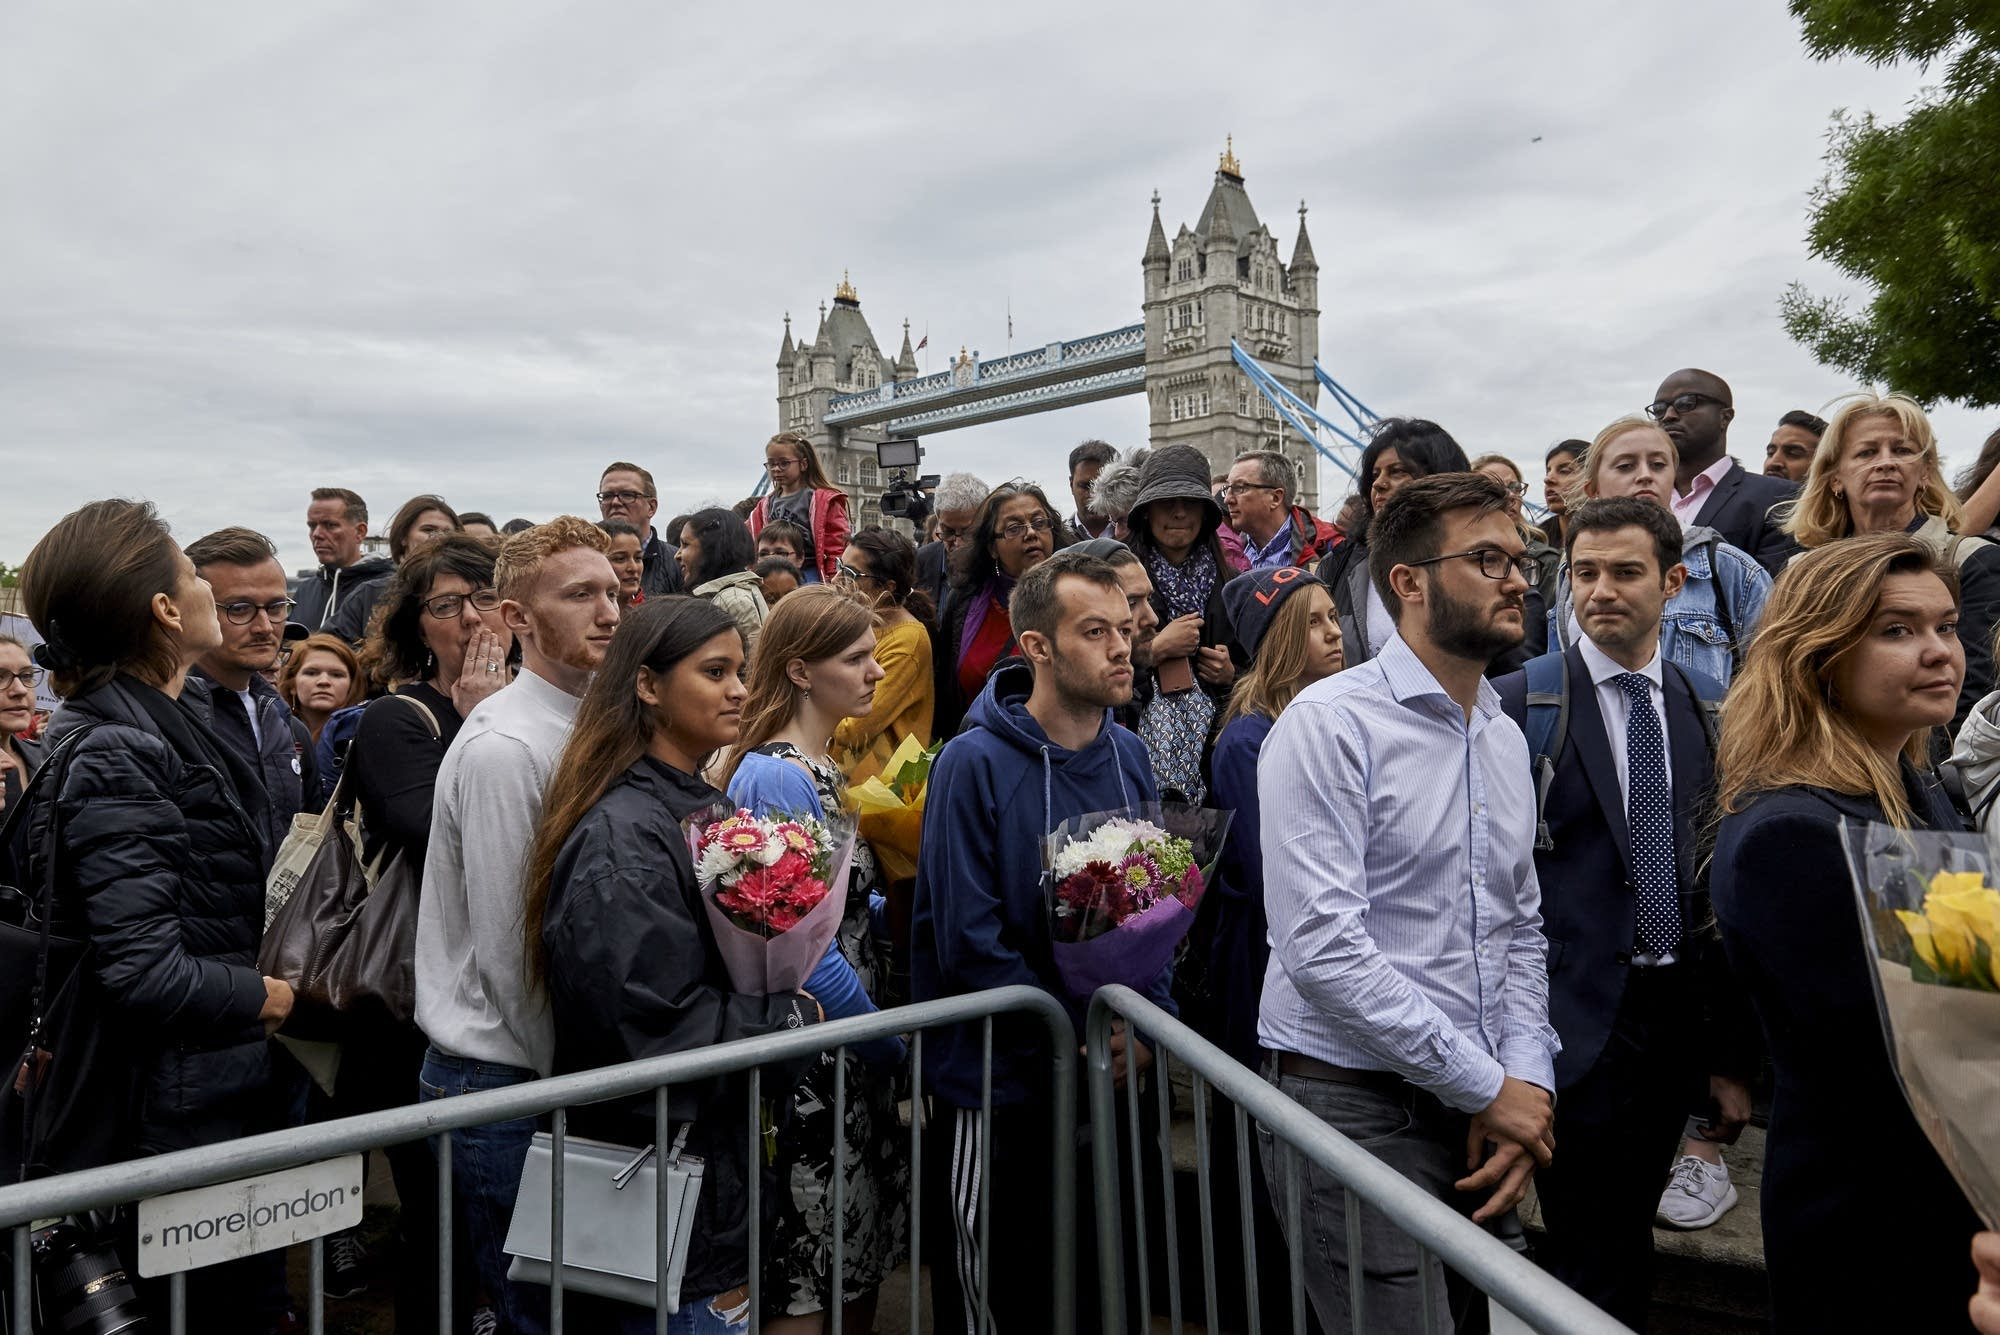 London Bridge attacker tried to rent larger truck, police say